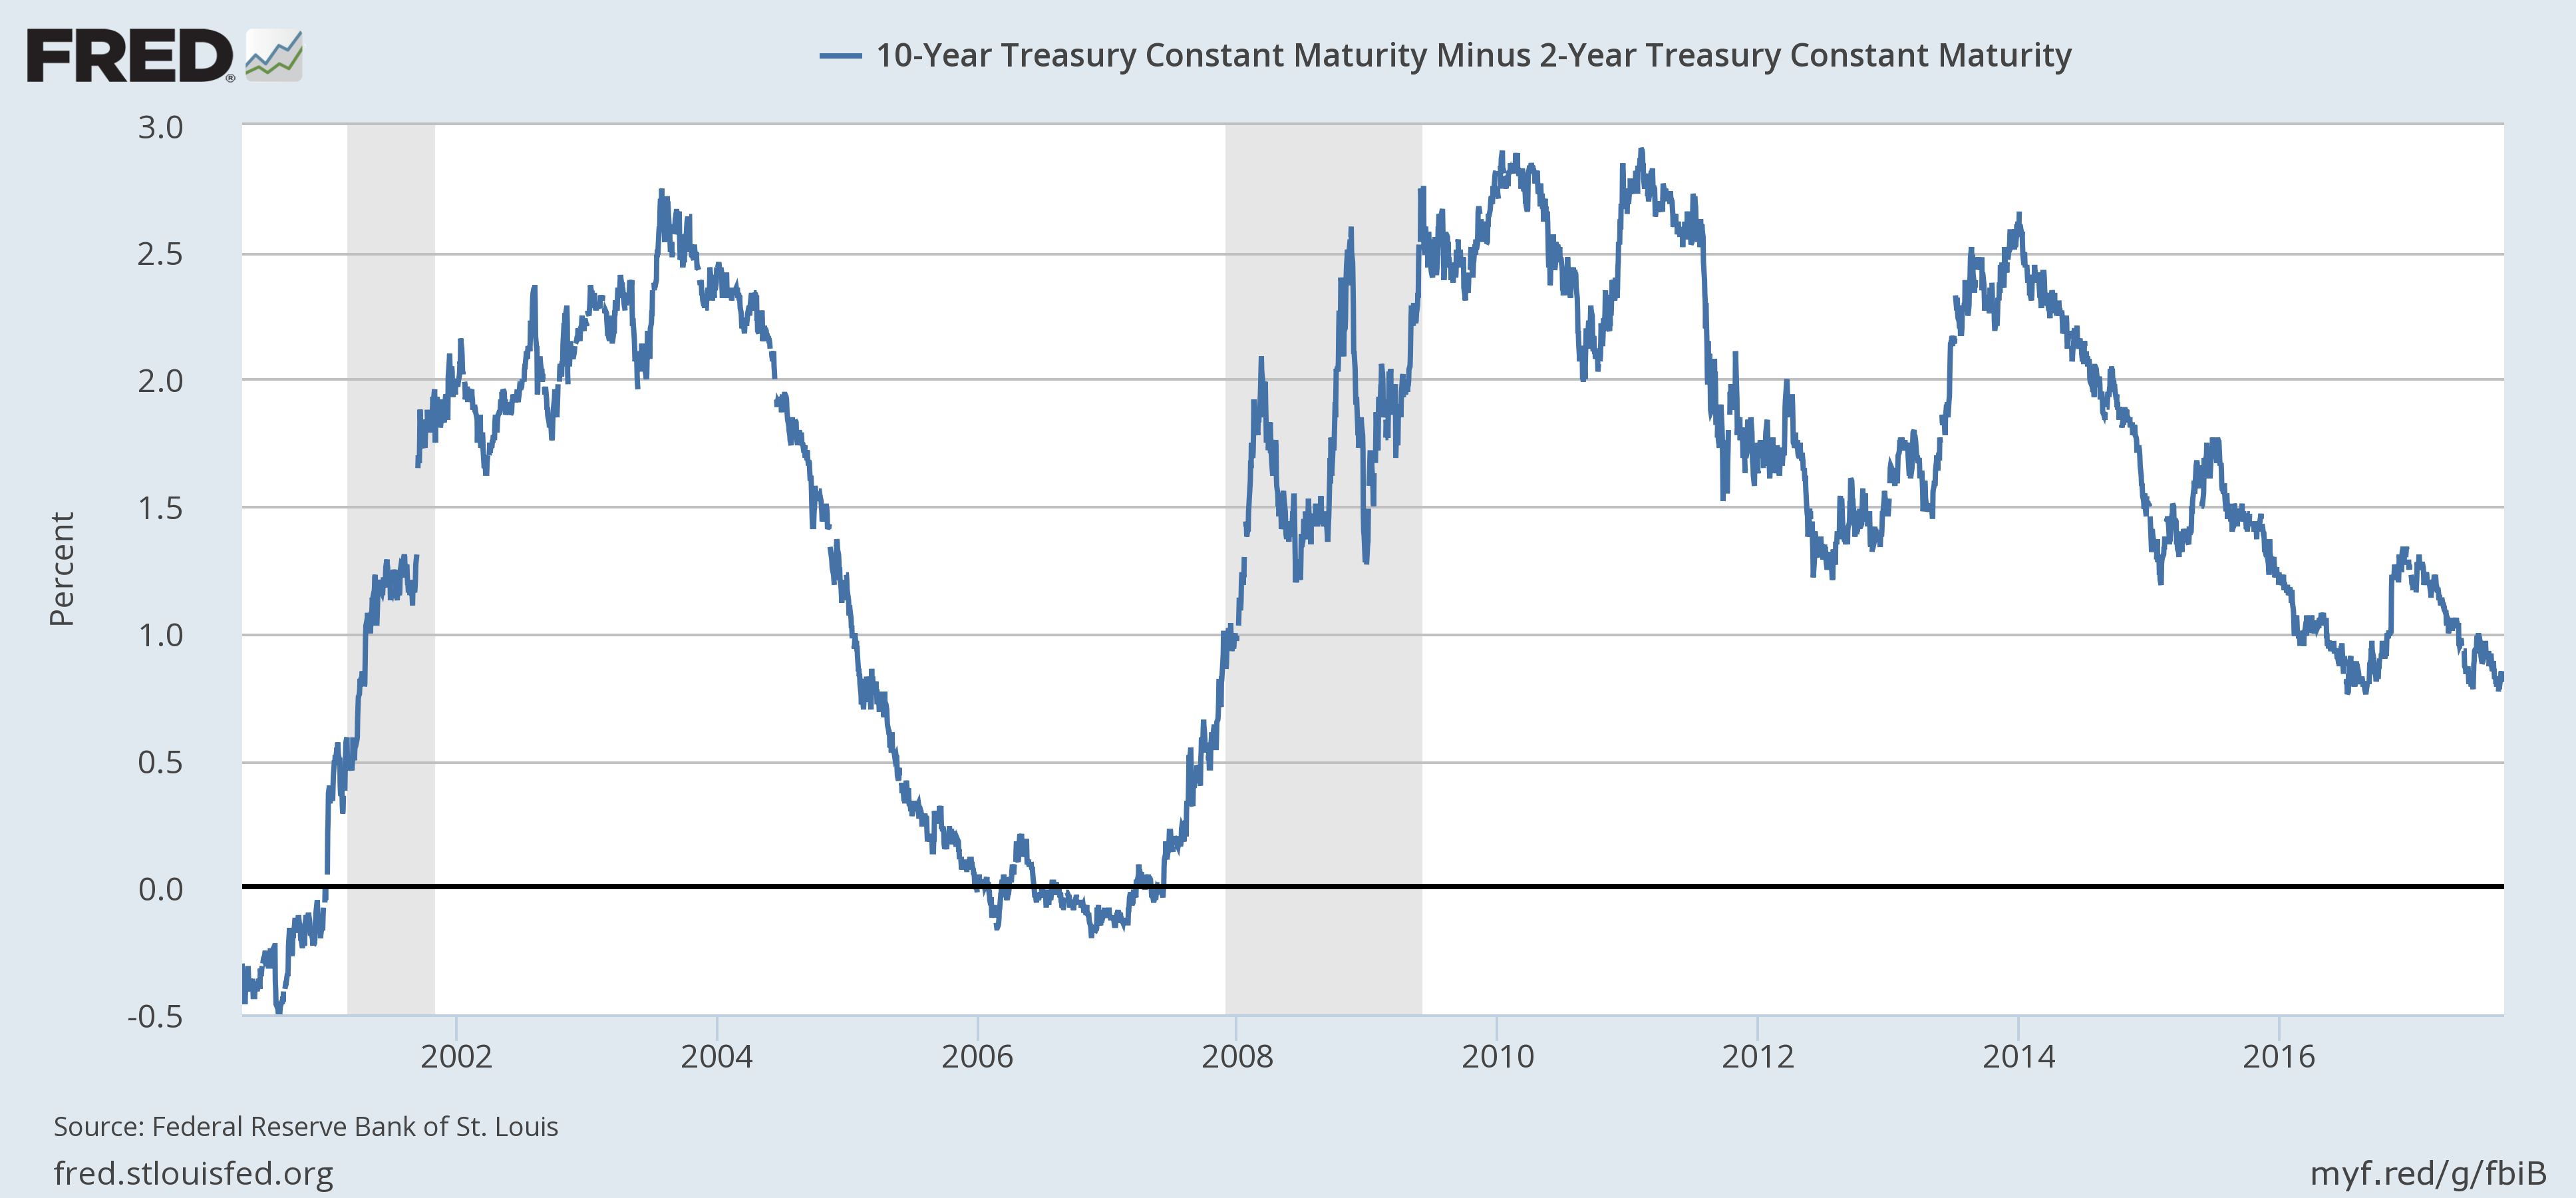 US 10 Year Treasury Constant Maturity, 2002 - 2017